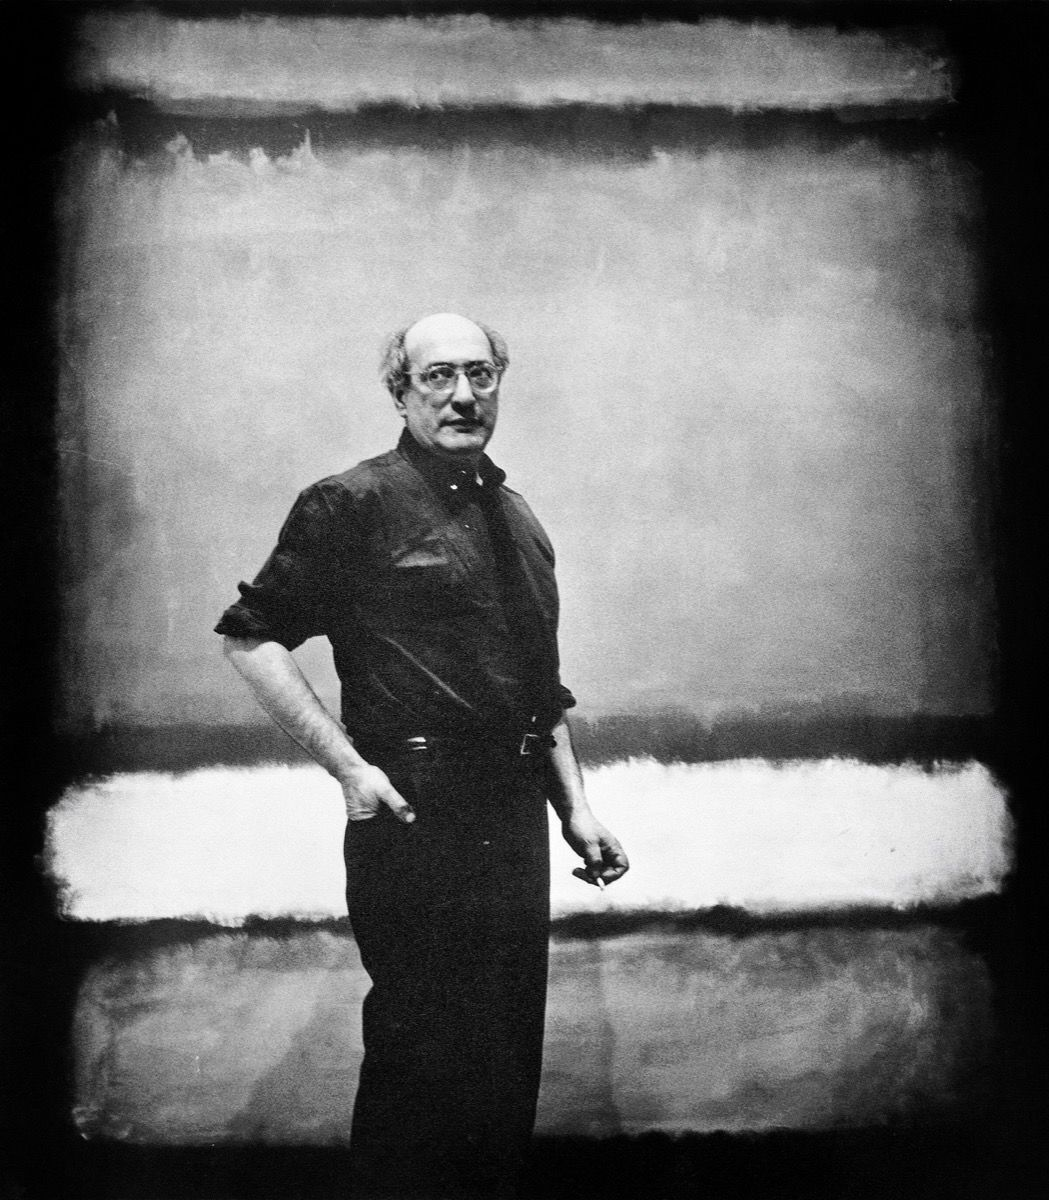 Mark Rothko, 1961. Photo by Kate Rothko/Apic/Getty Images.